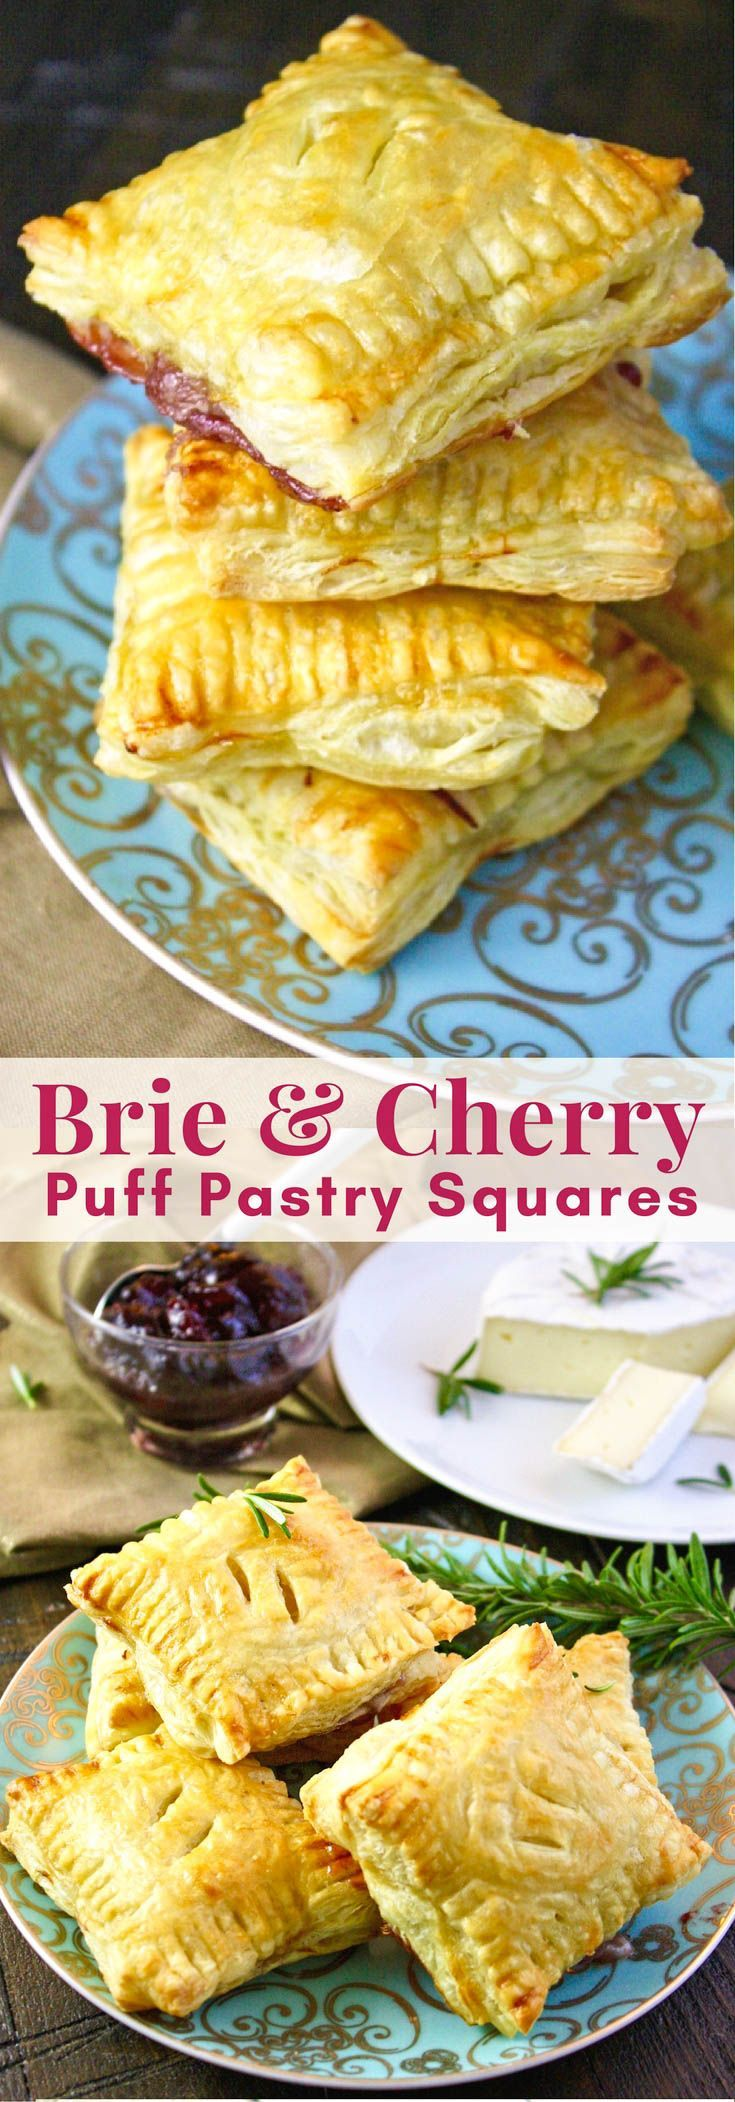 Easy Brie and Cherry Puff Pastry Squares make an elegant and easy-to-make appetizer. This is a great appetizer to make, just in time for the holidays!